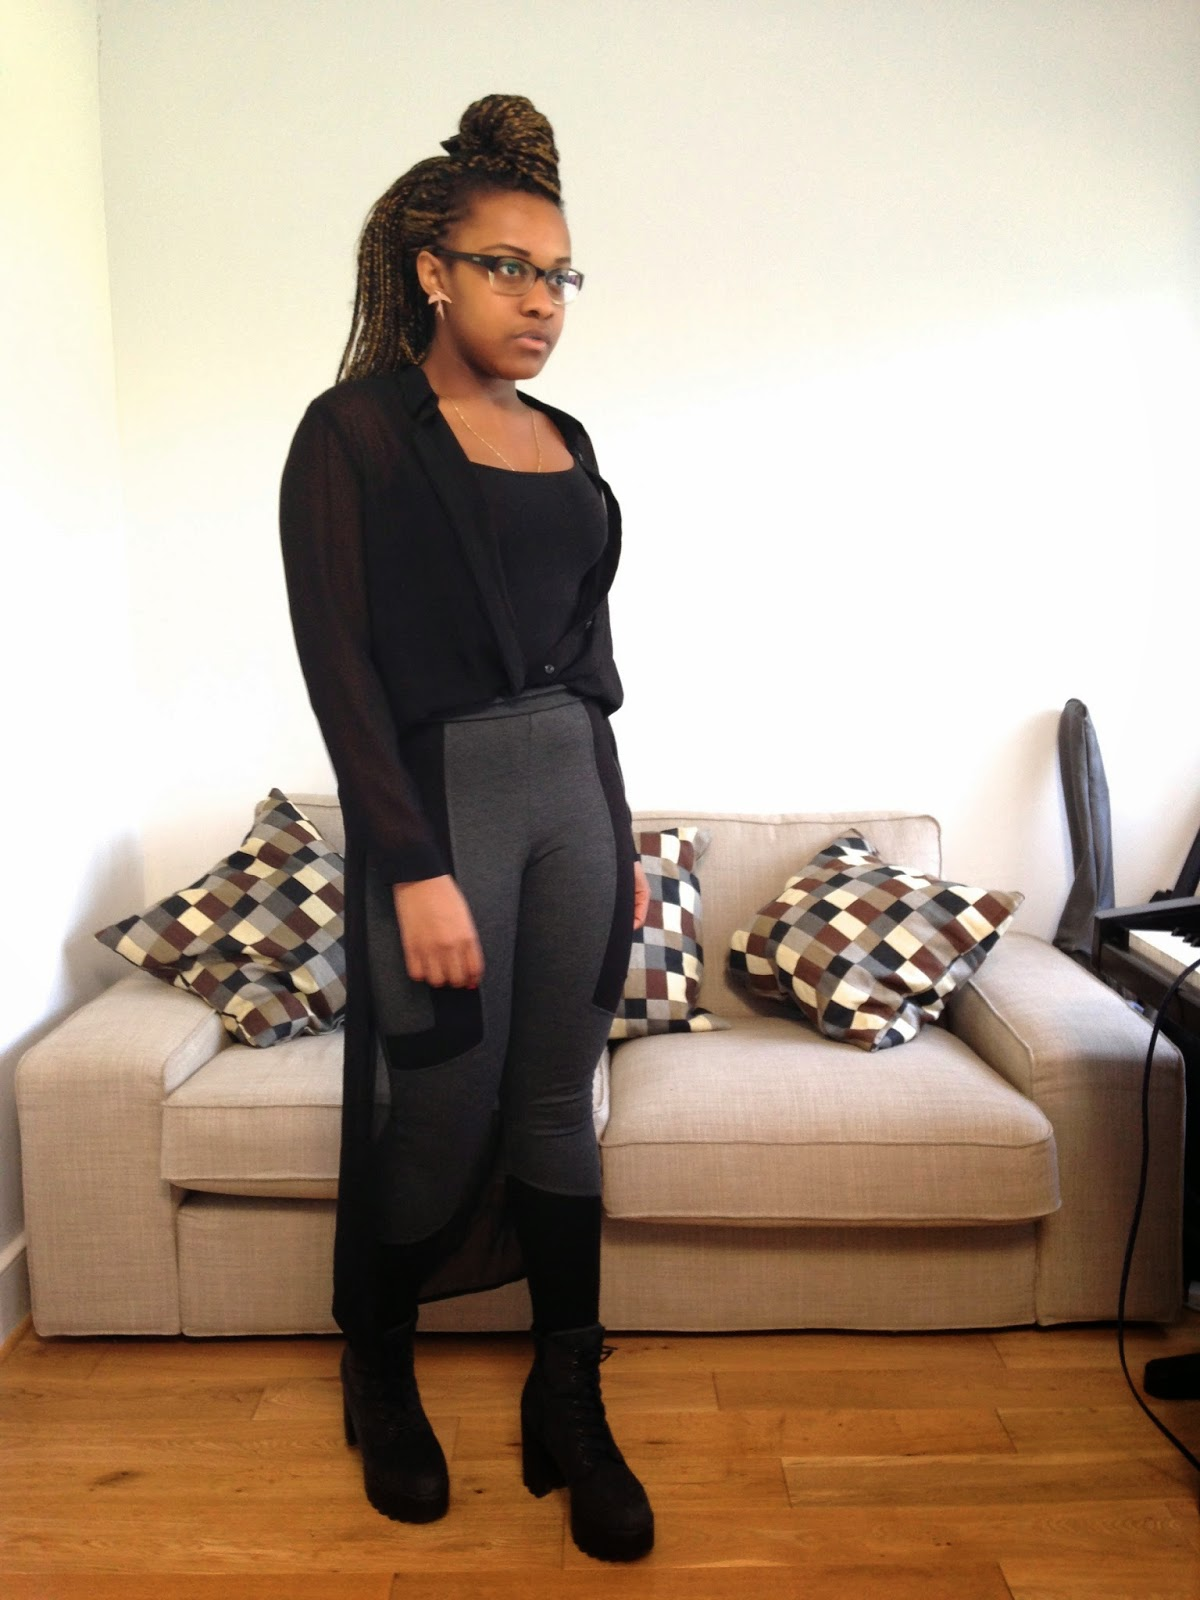 HM Kimono Shirt Top Topshop Leggings New Look Chunky Cleated Sole Black Boots